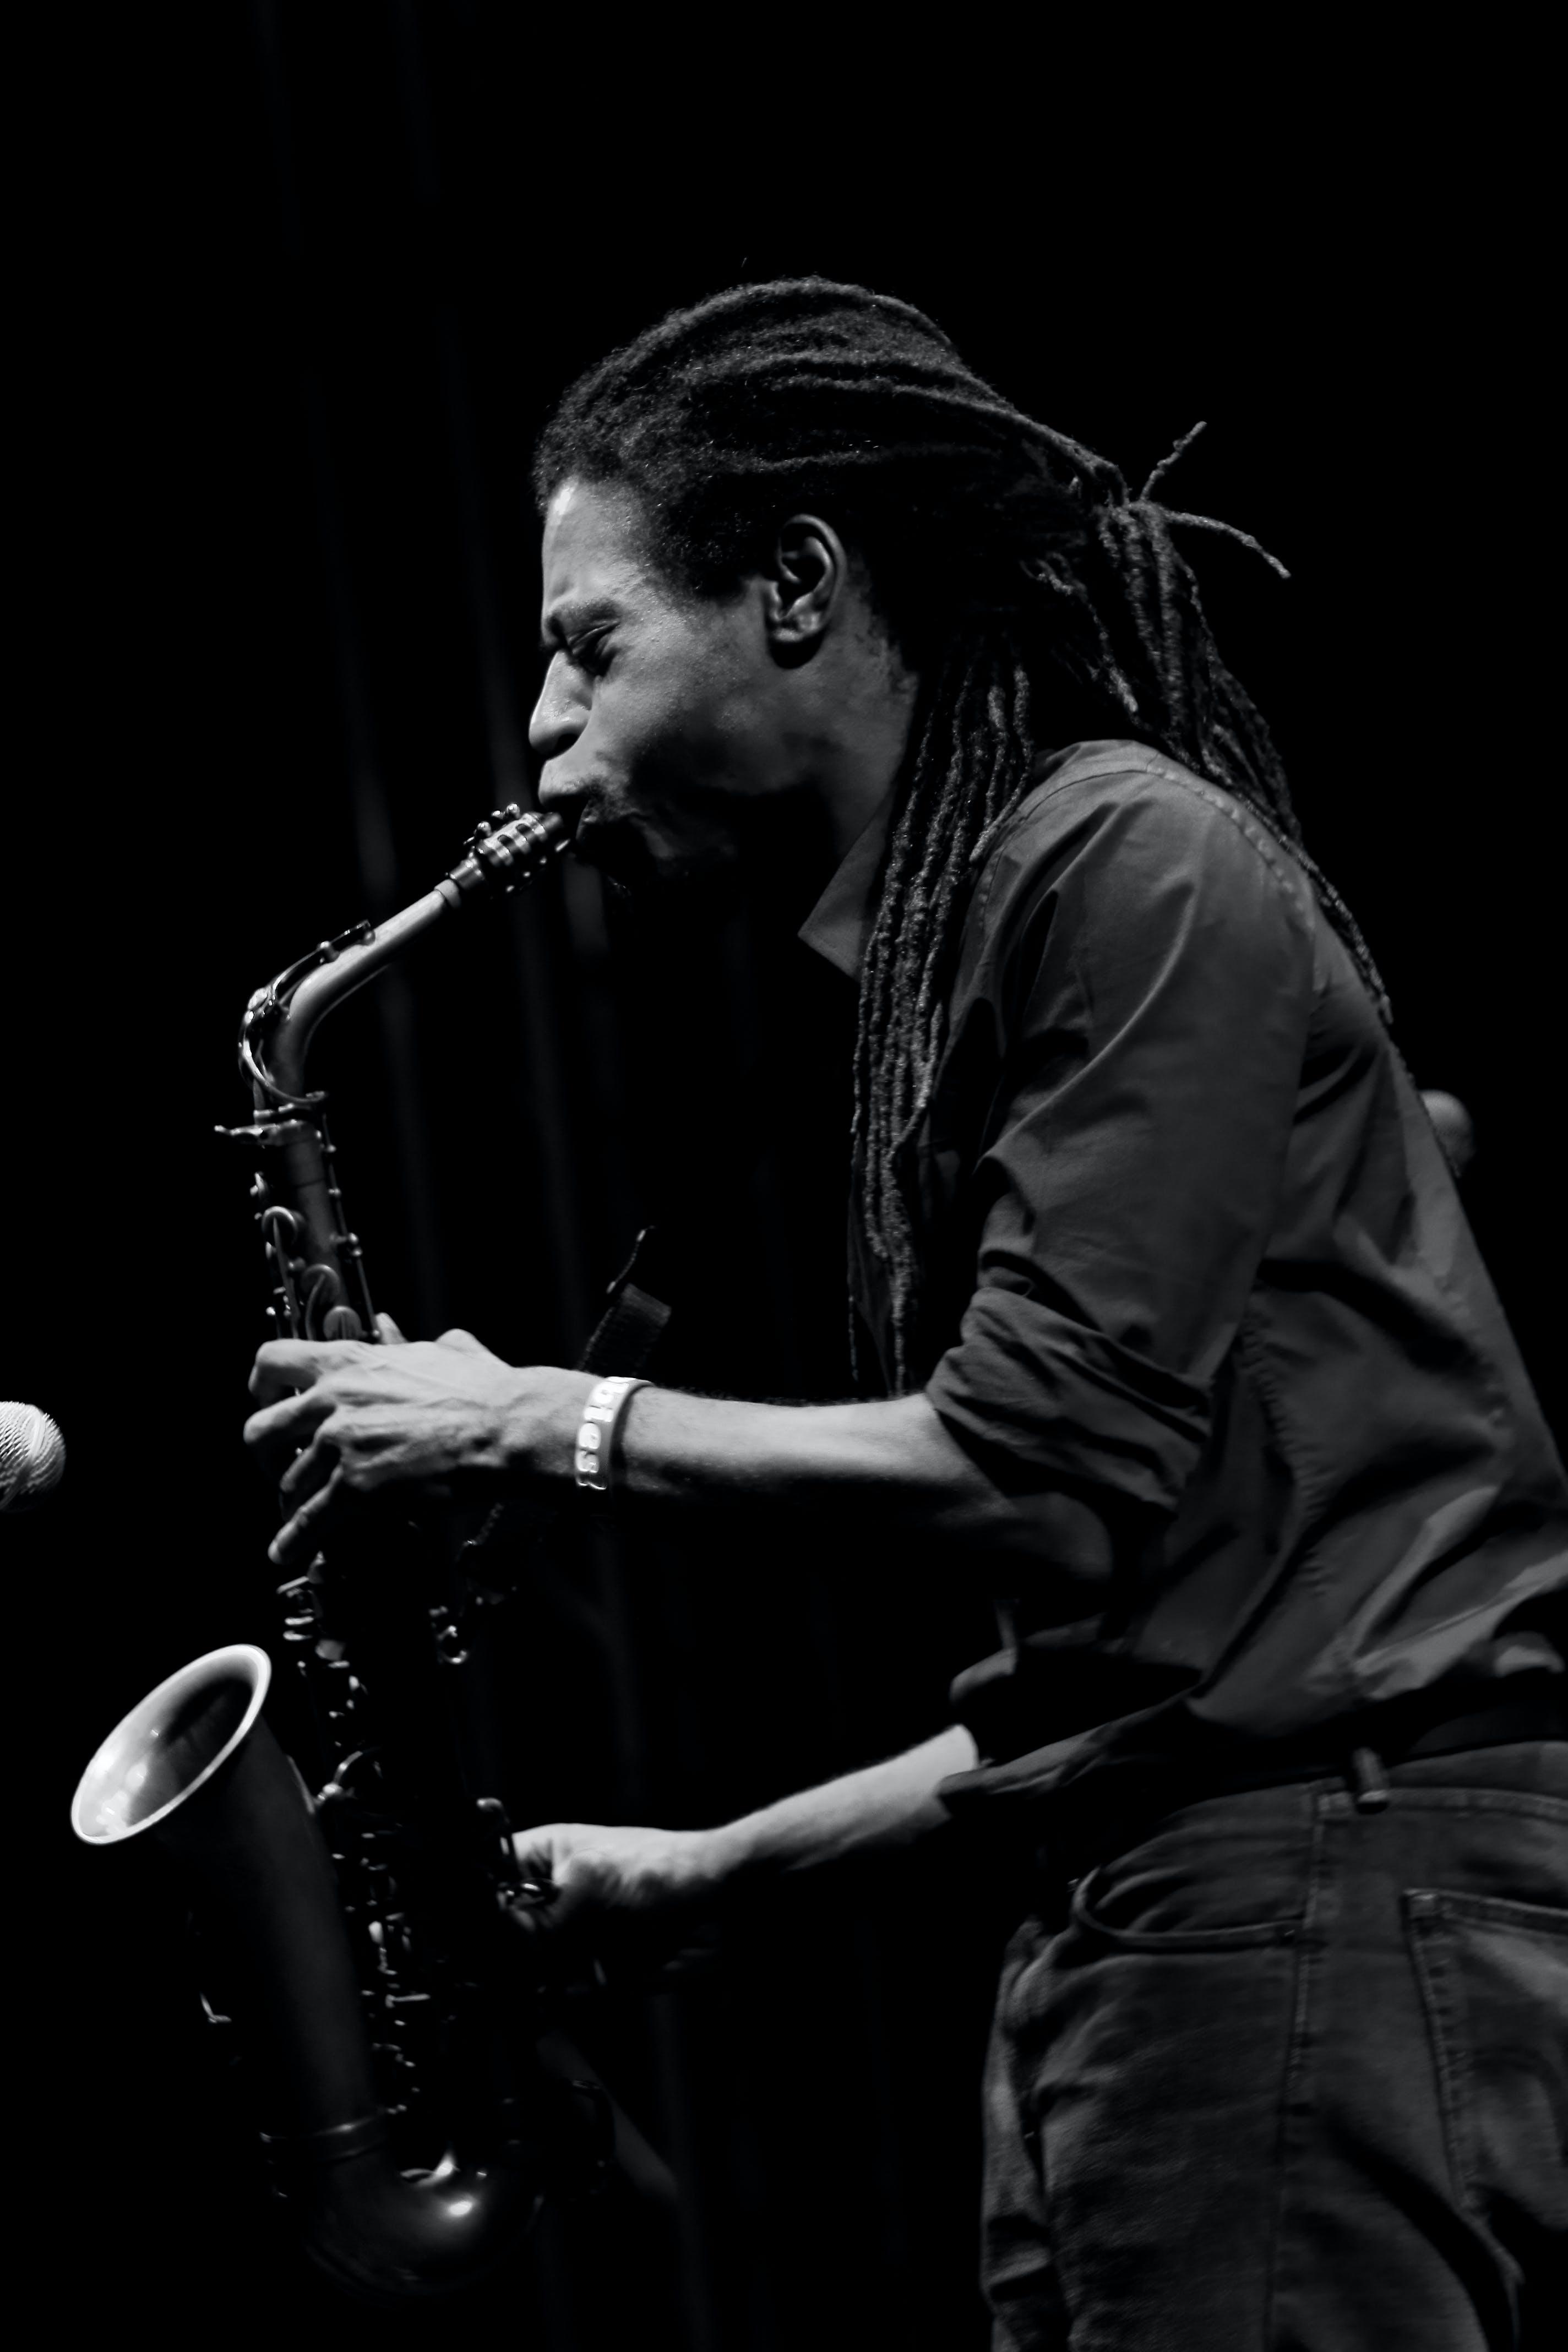 Monochrome Photo of Man Playing Saxophone